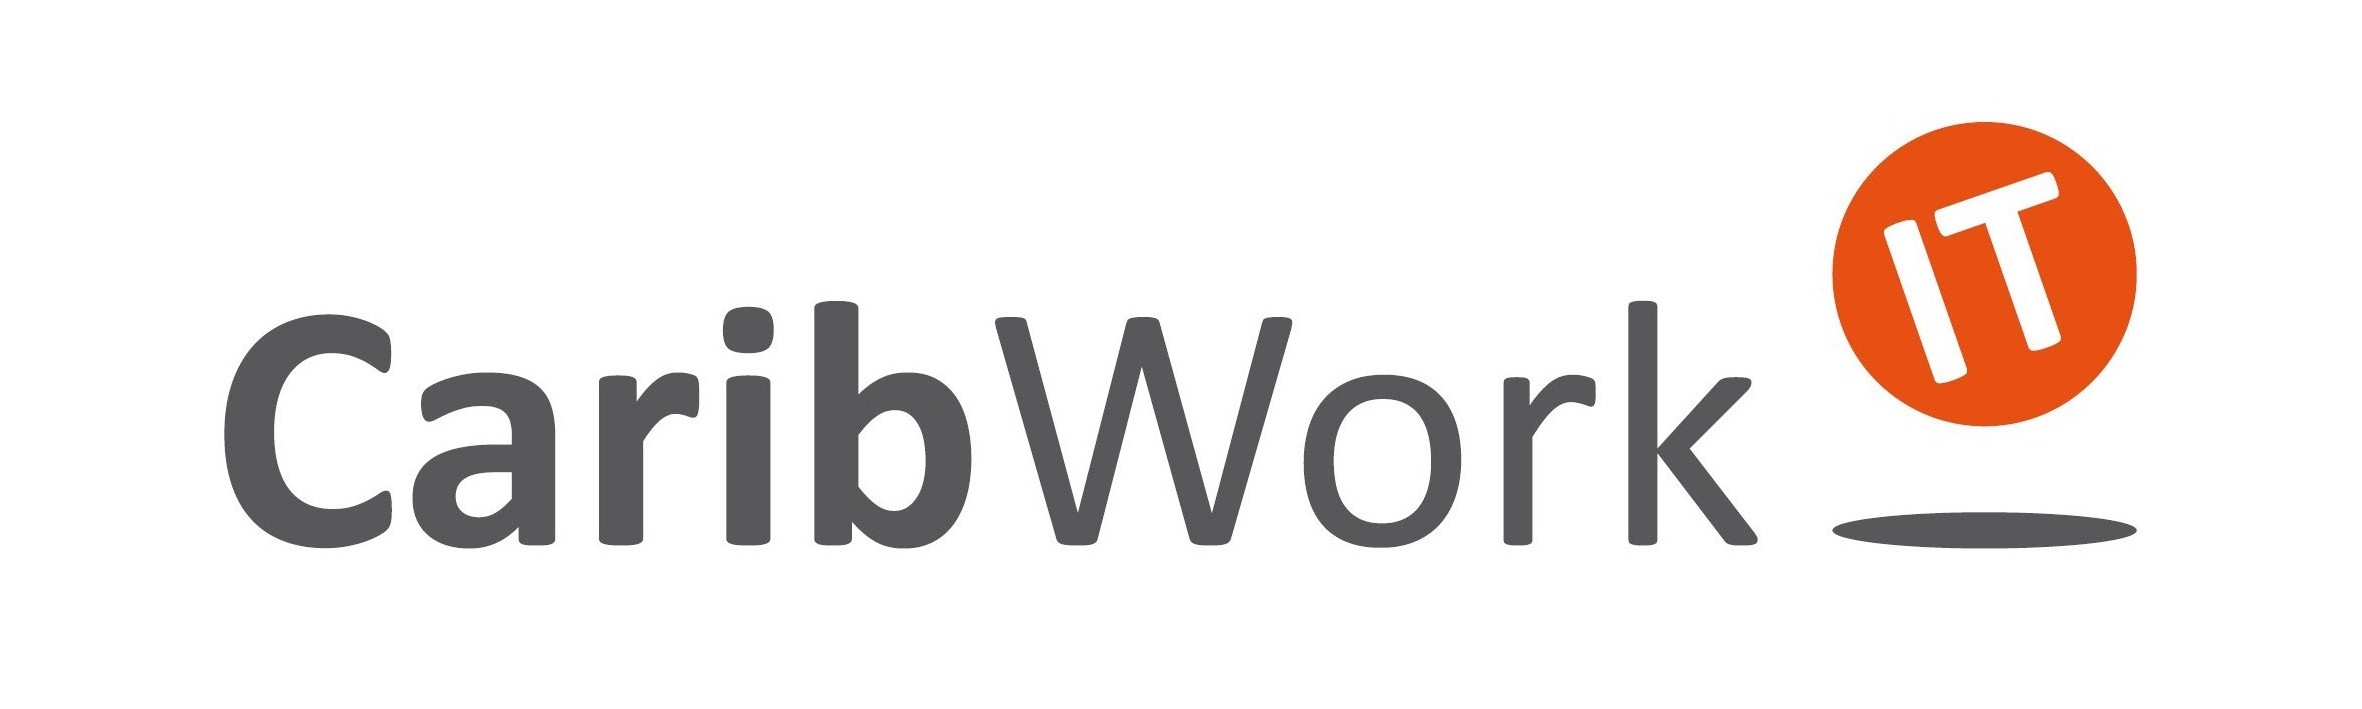 CaribWork-IT